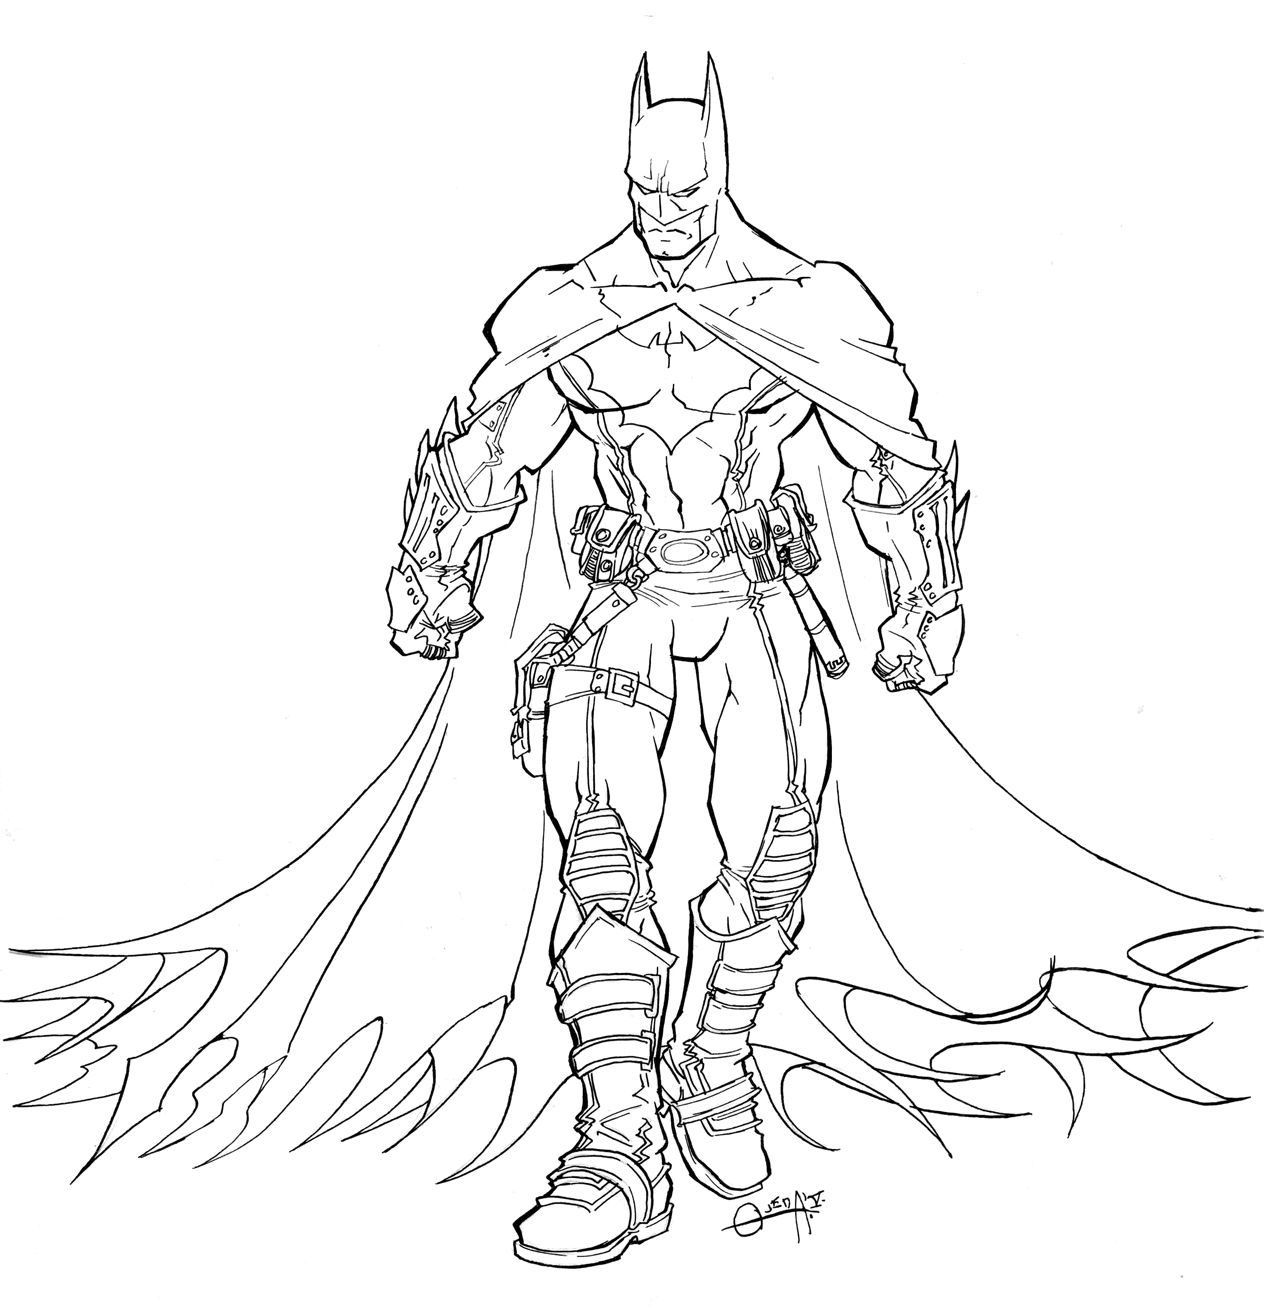 Printable coloring pages batman - Free Print Coloring Sheets Free Printable Batman Coloring Pages For Kids